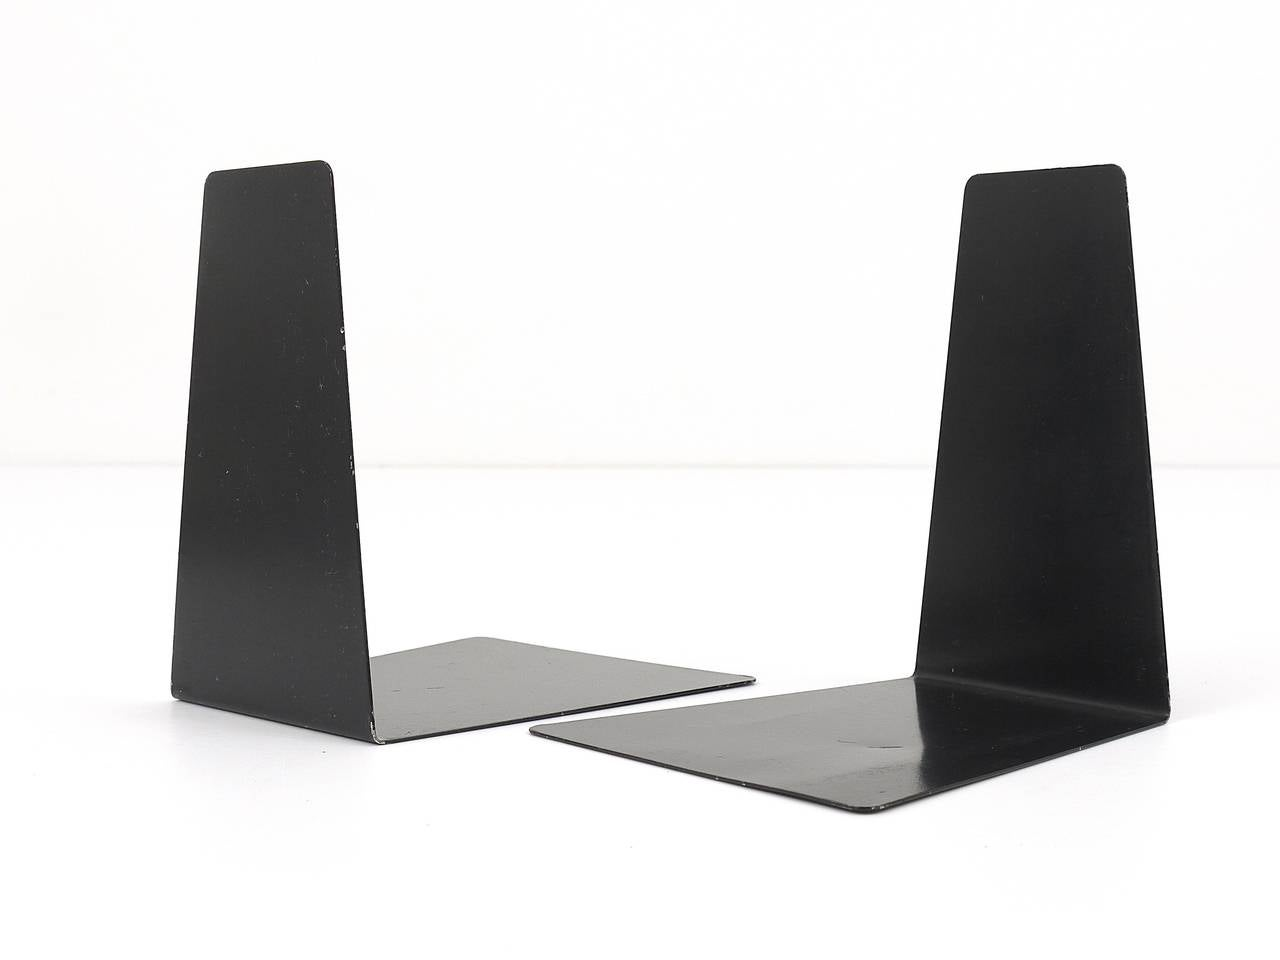 Mid-20th Century Bauhaus Black Metal Bookends by Marianne Brandt, 1930s for Ruppel, Germany For Sale